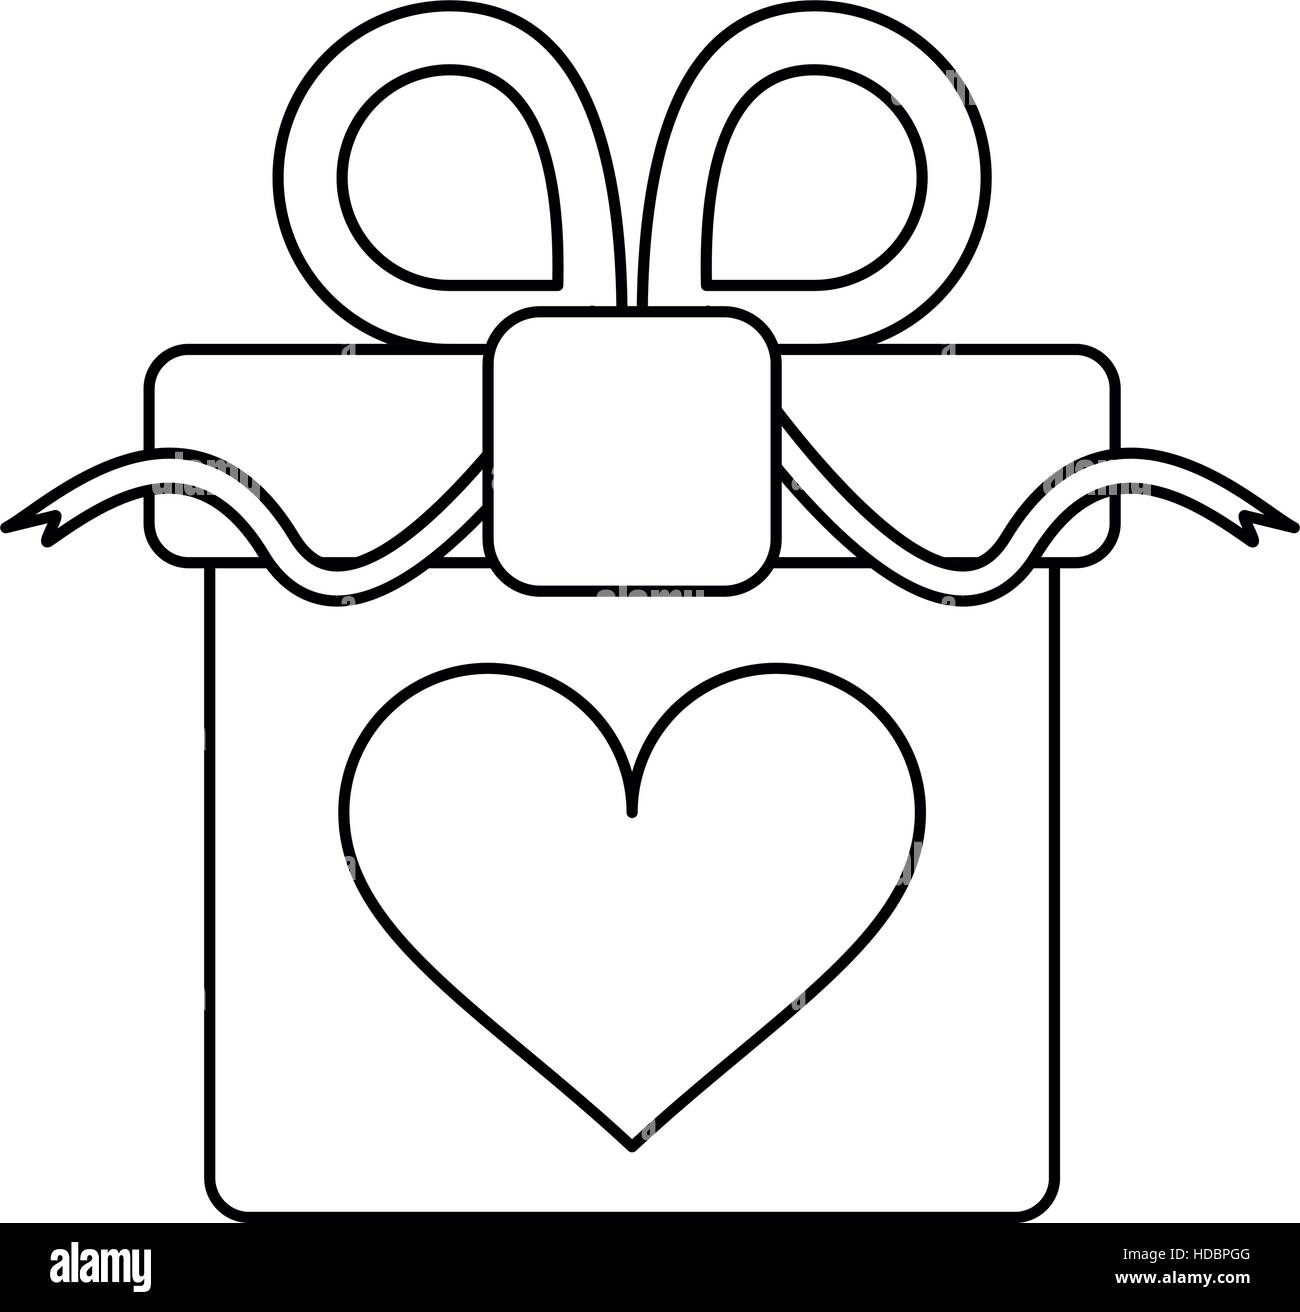 gift box with heart and bow outline stock vector art